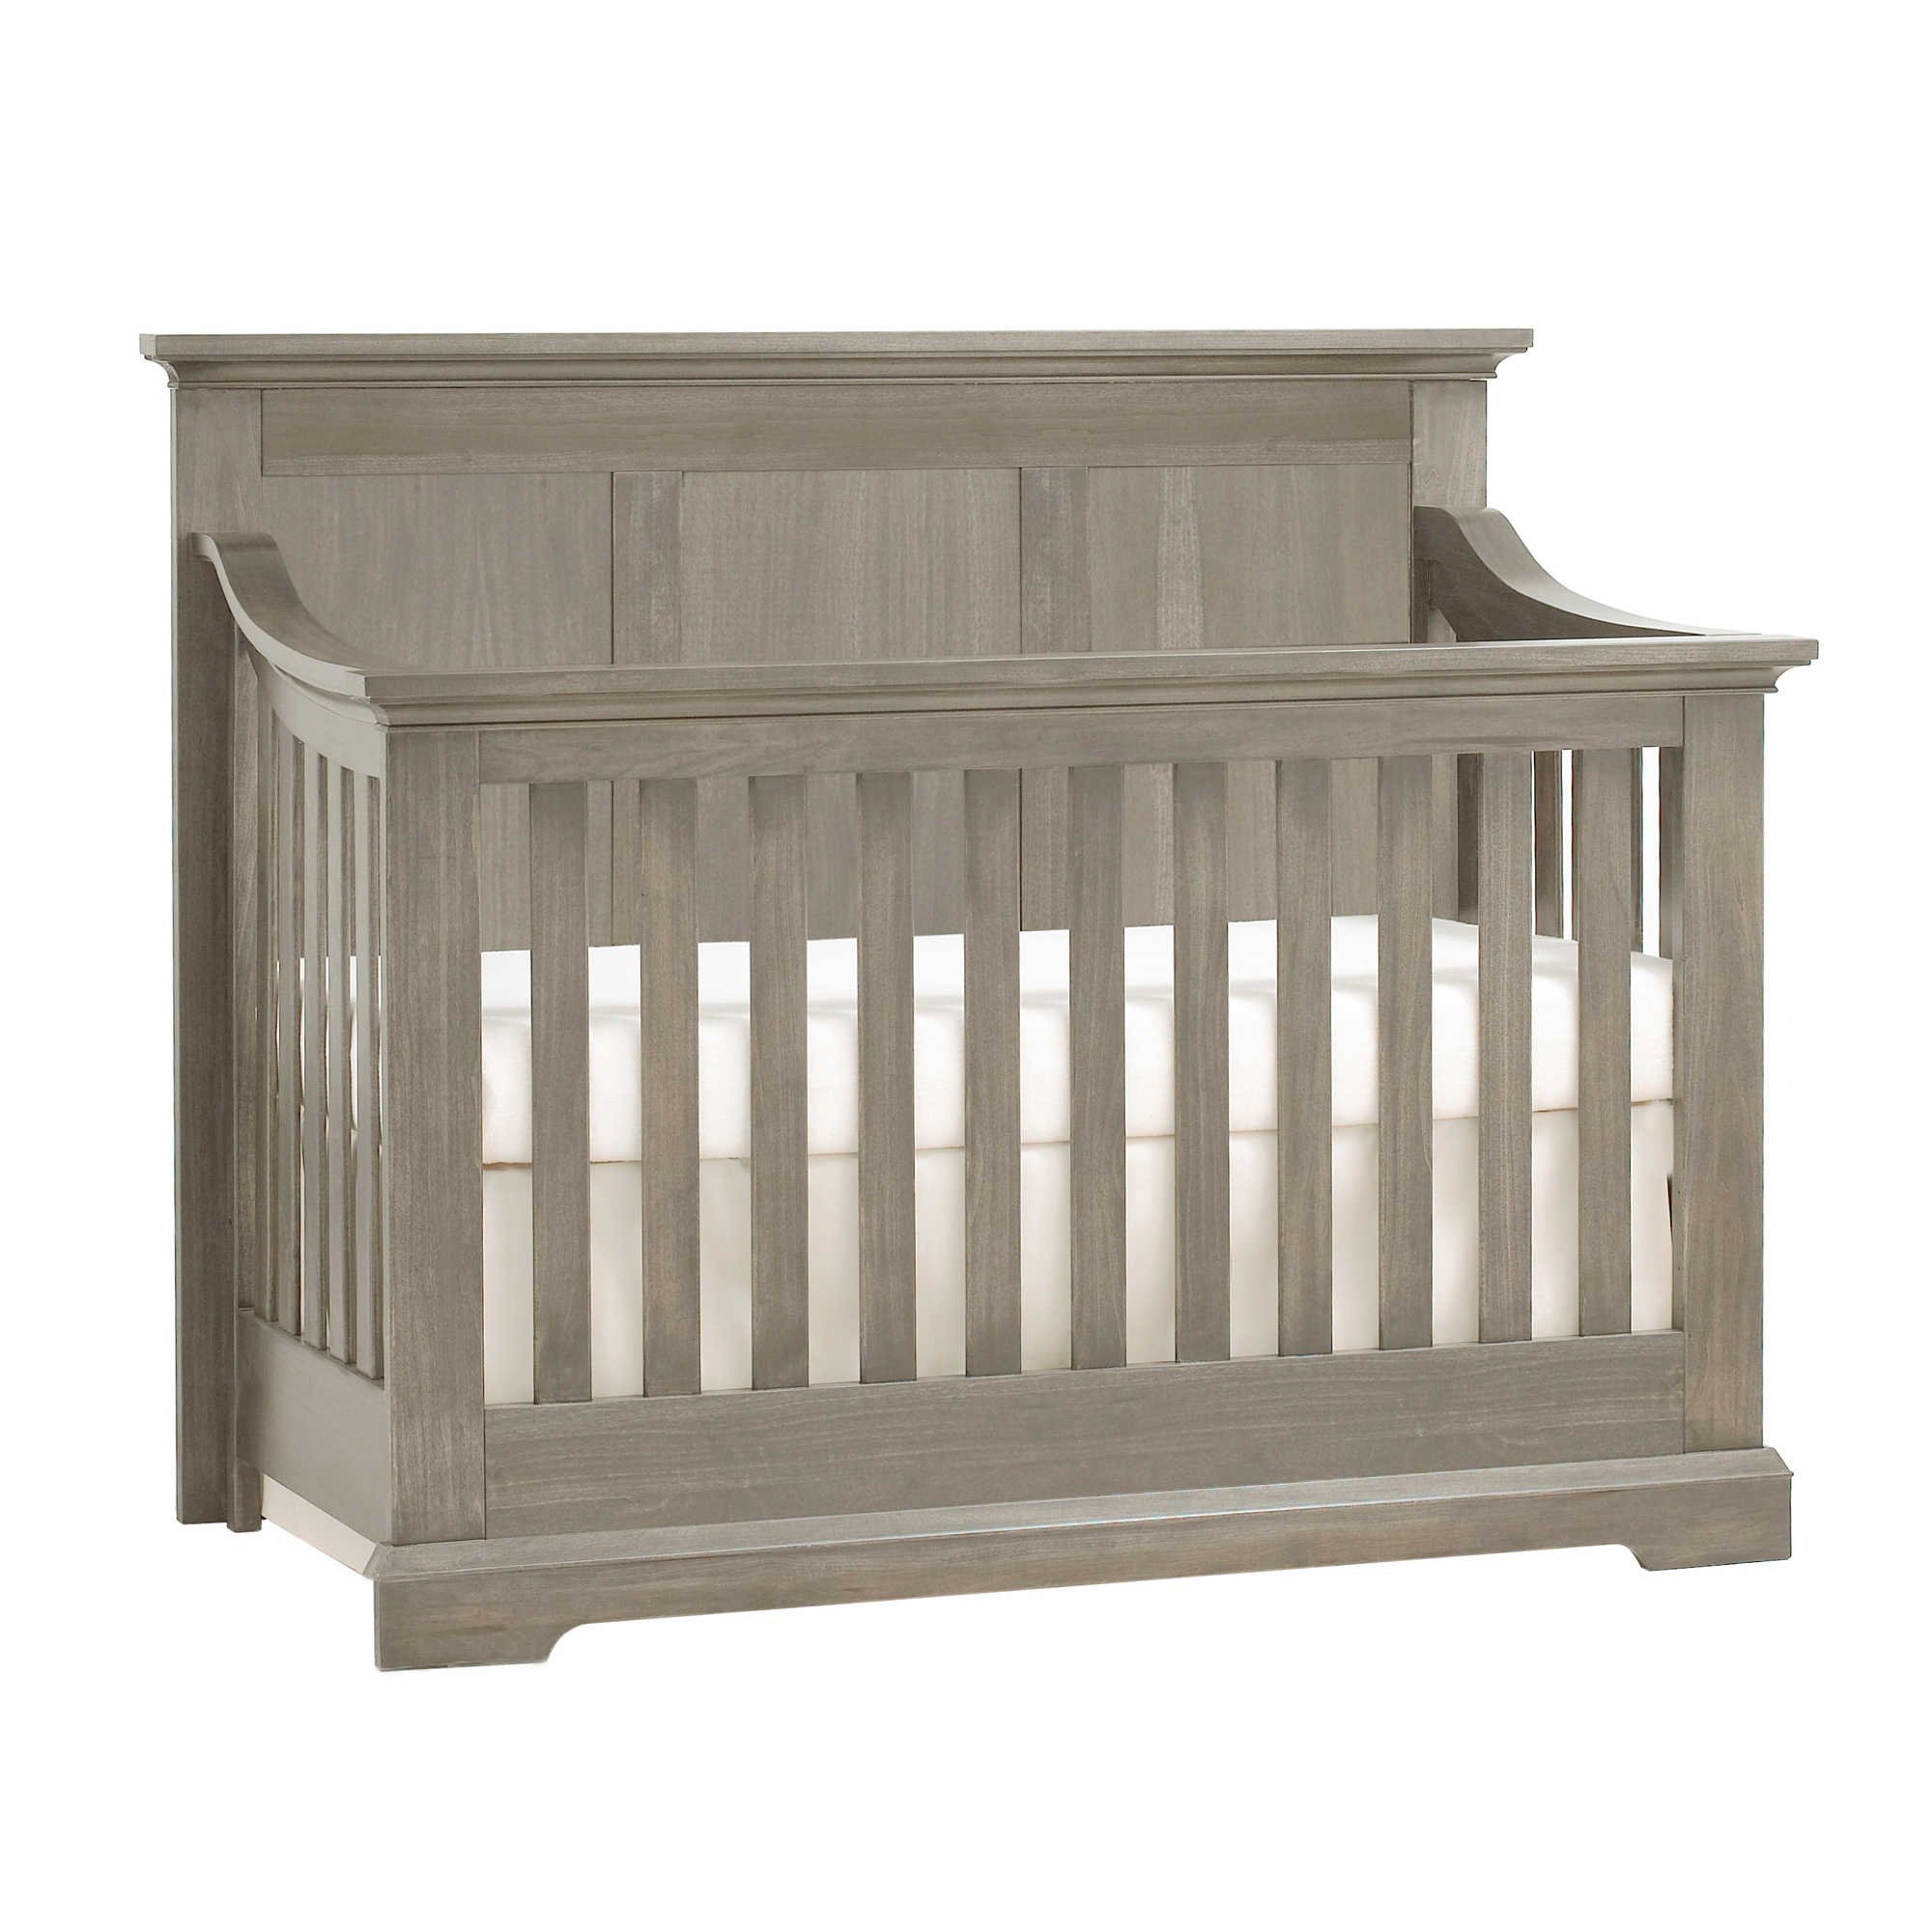 Full Size Conversion Kit Bed Rails for Munire's Kingsley Baby Jackson Crib - Ash Gray by CC KITS (Image #2)